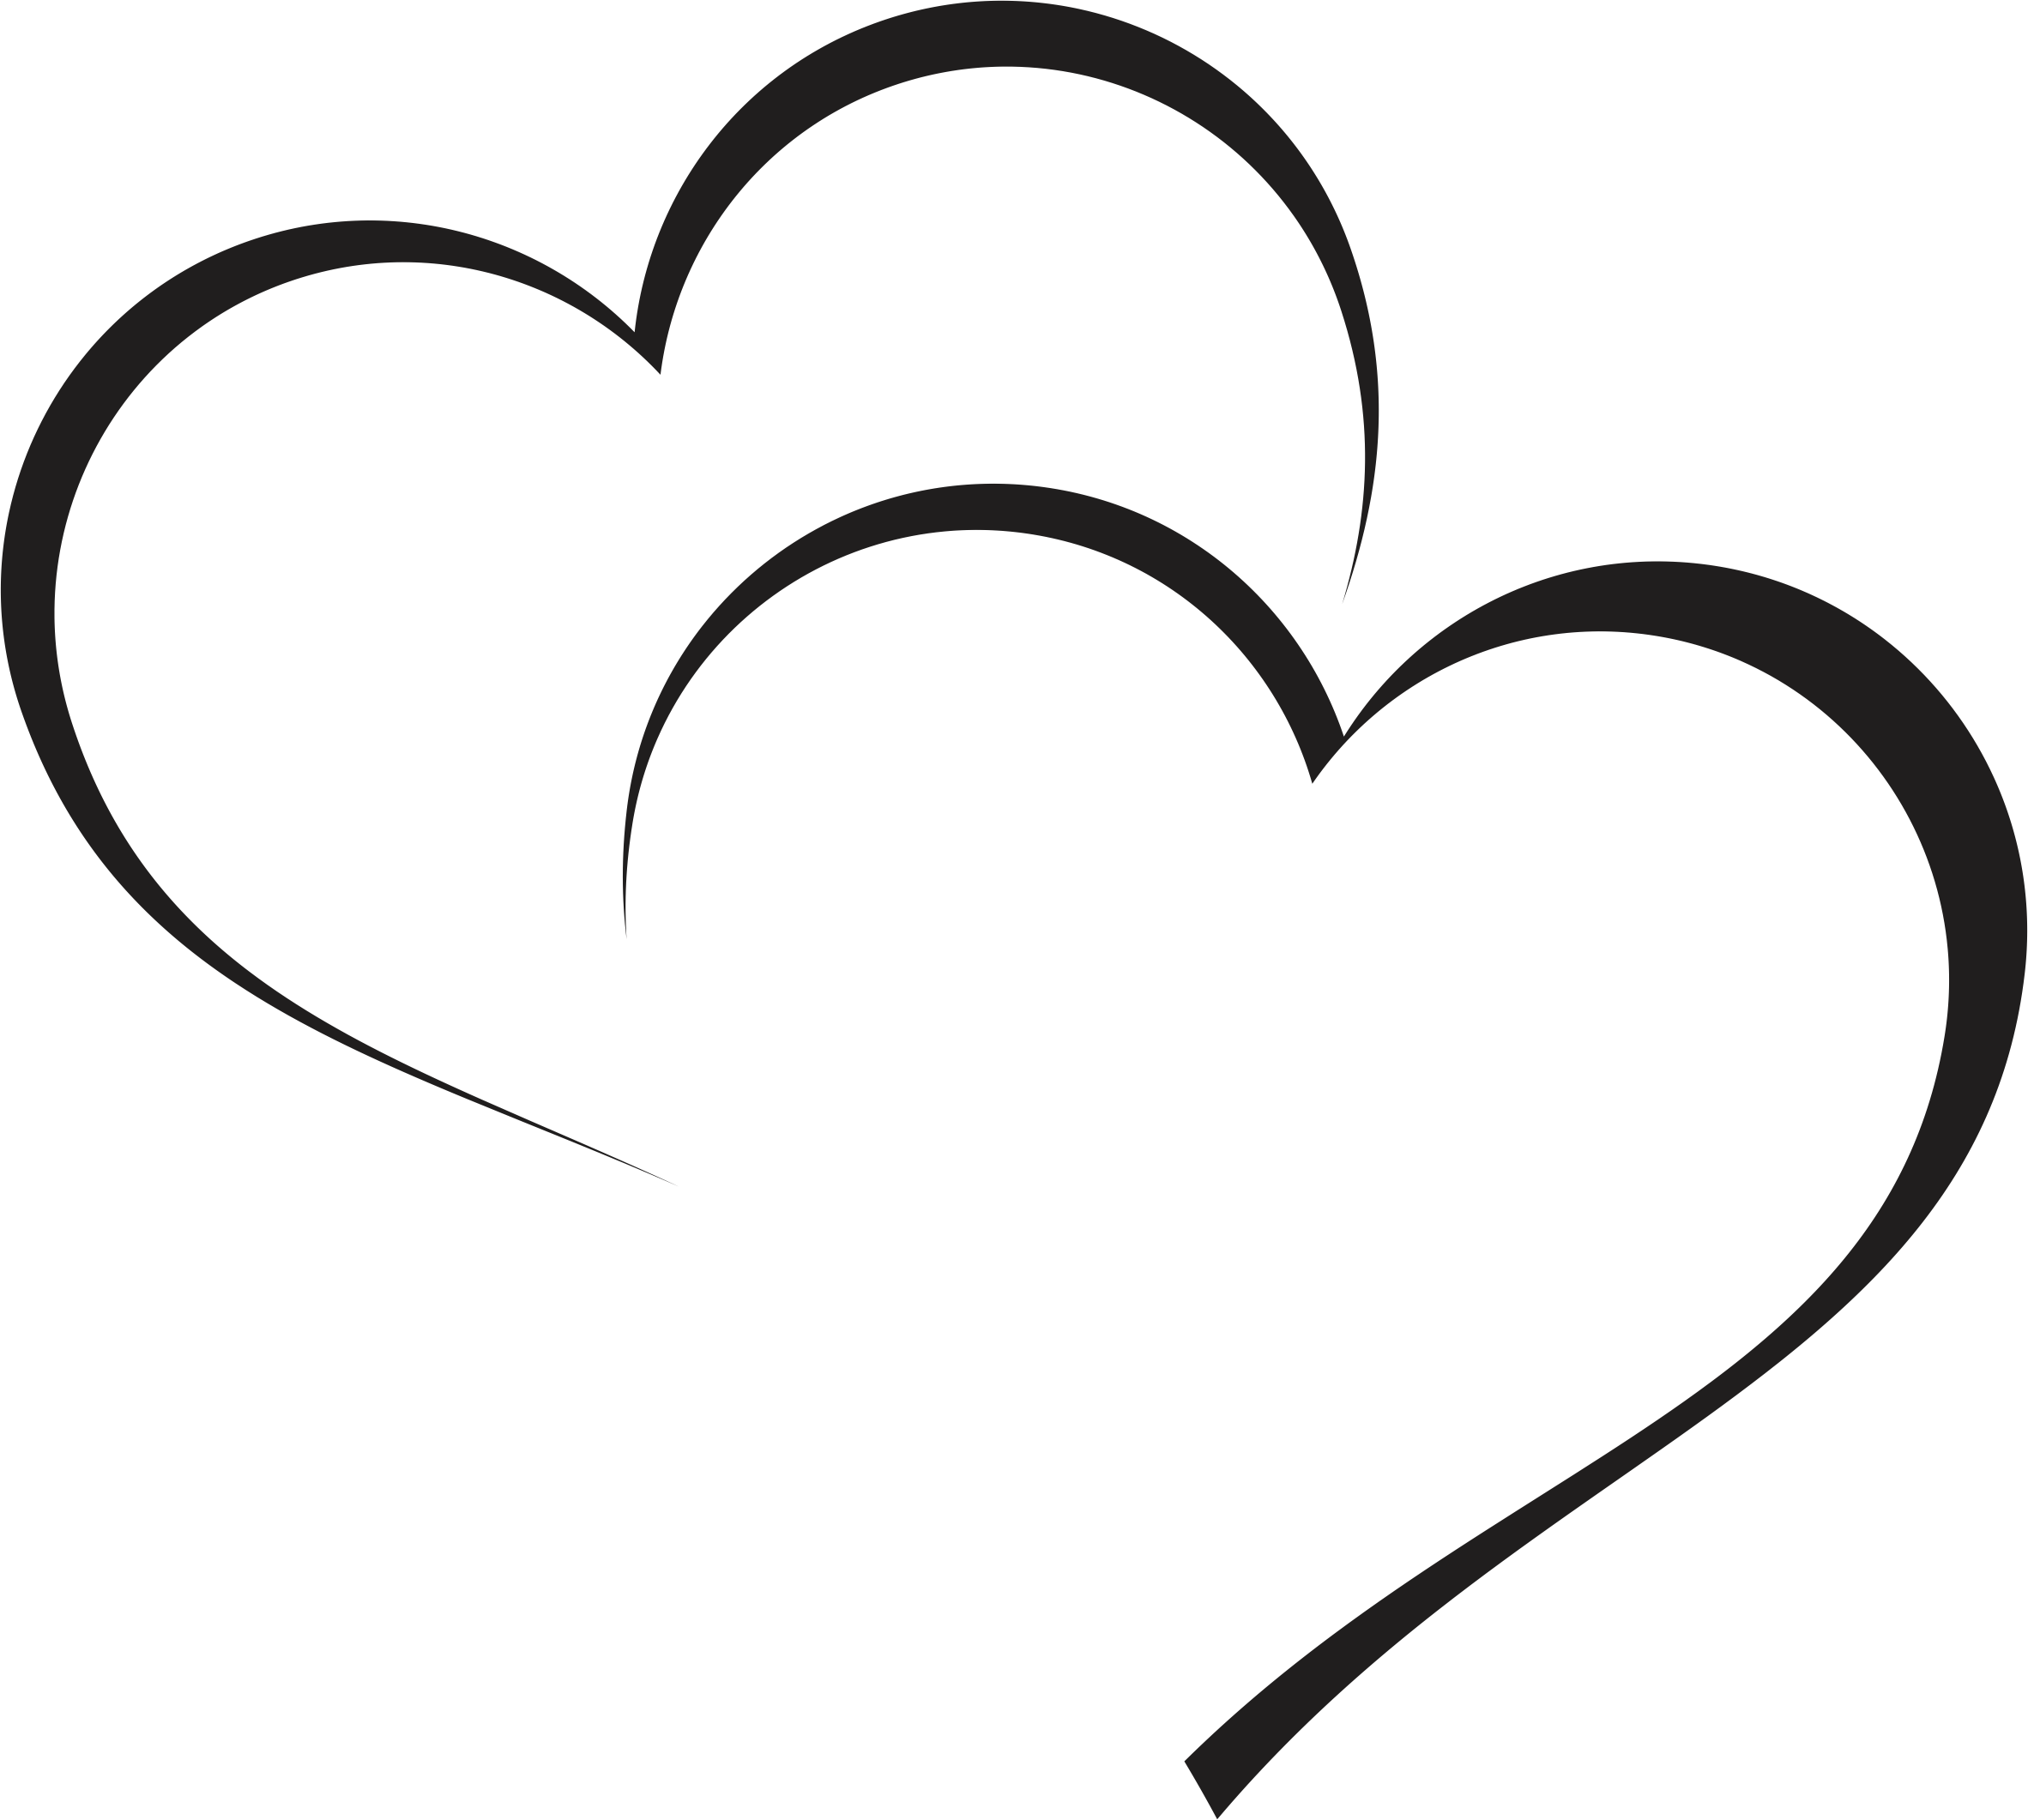 Rustic heart clipart png jpg transparent Heart Clipart Clipart out line - Free Clipart on Dumielauxepices.net jpg transparent